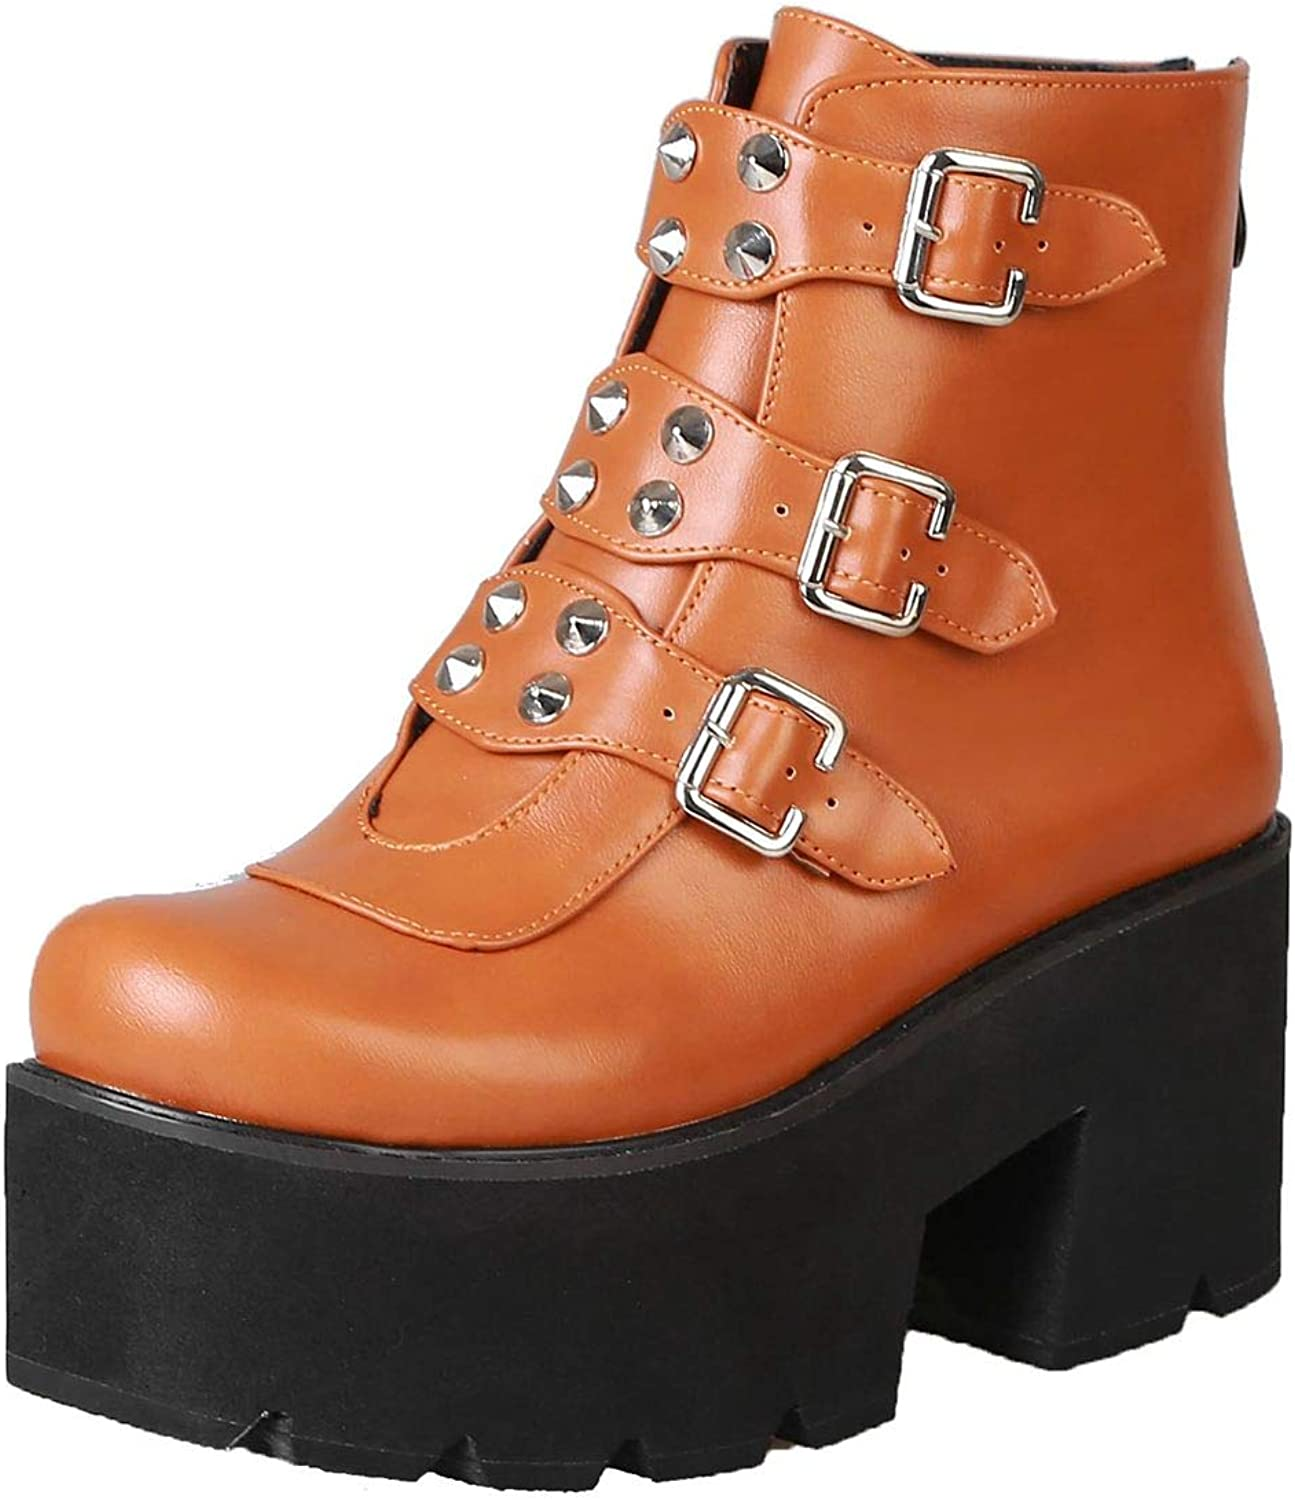 Vitalo Womens Studded Platform Chunky High Heels Ankle Booties Biker Punk Strappy Buckle Boots